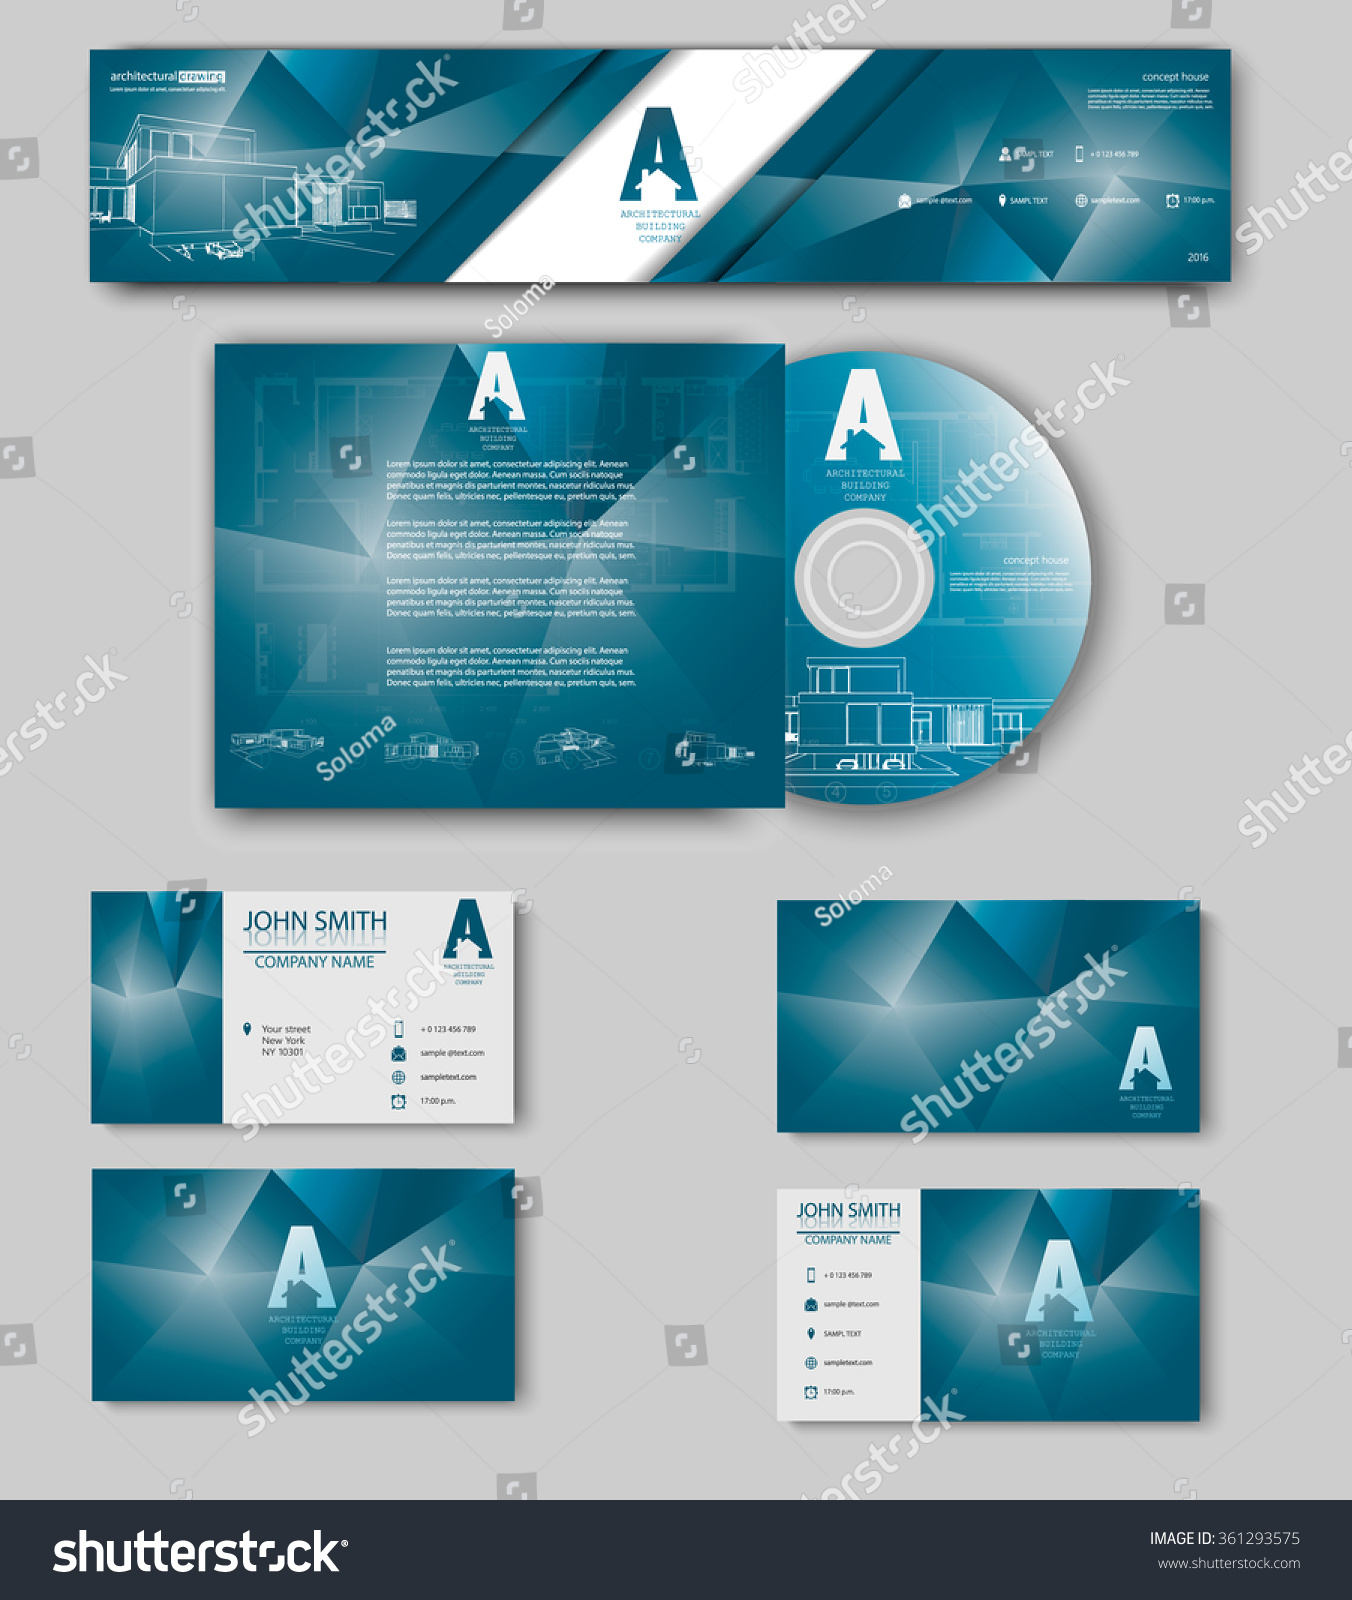 Business cards design blueprint sketch architectural stock vector business cards design with blueprint sketch for architectural company architectural background for architectural project malvernweather Images